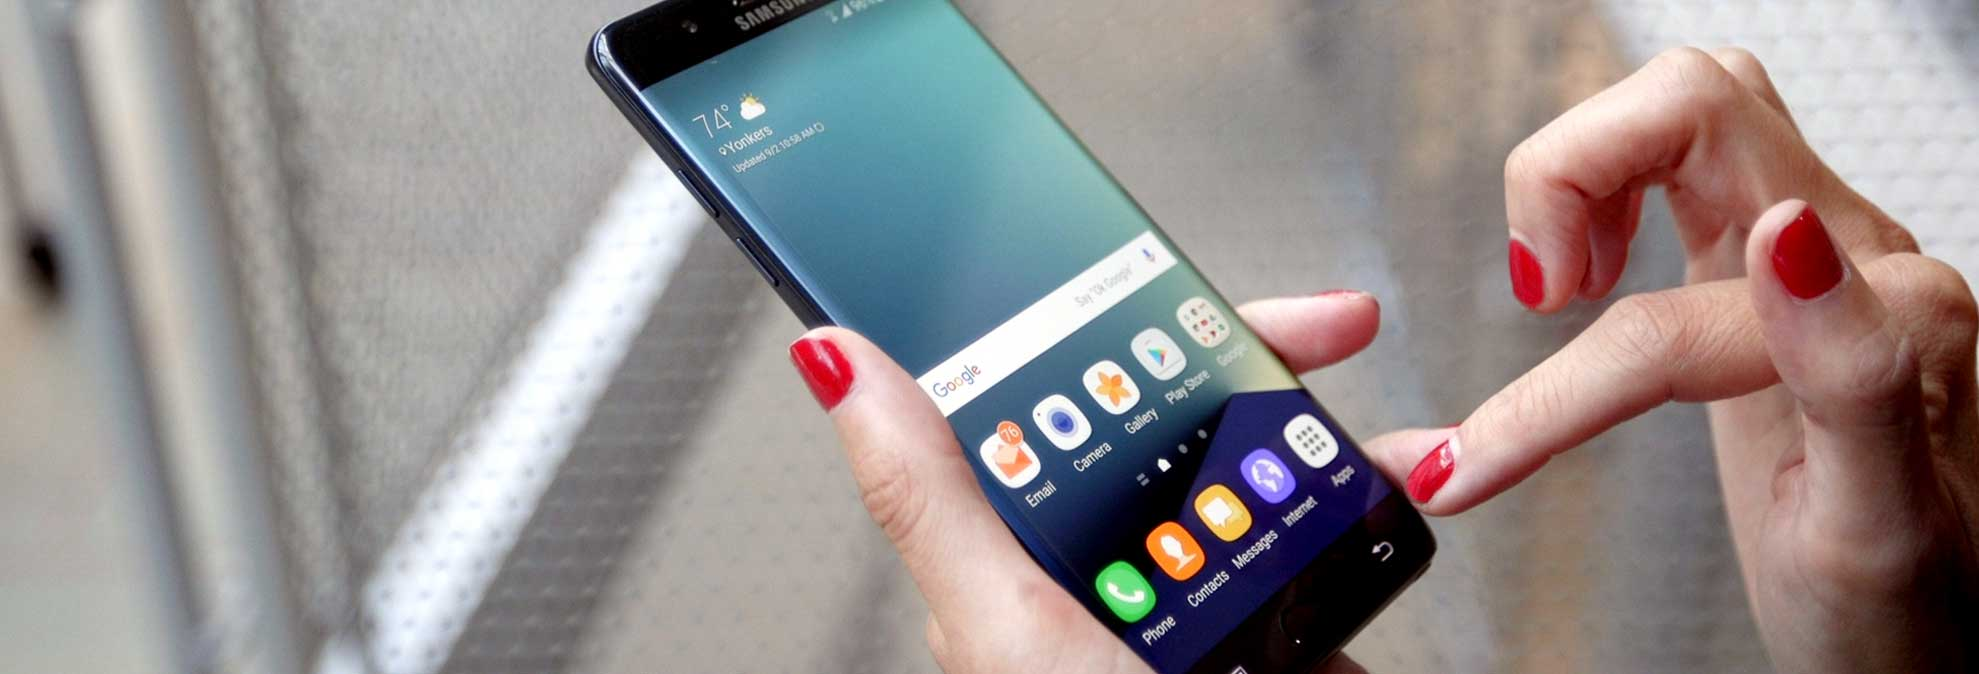 Samsung Note7 Recall Joins List Of Major Product Crises